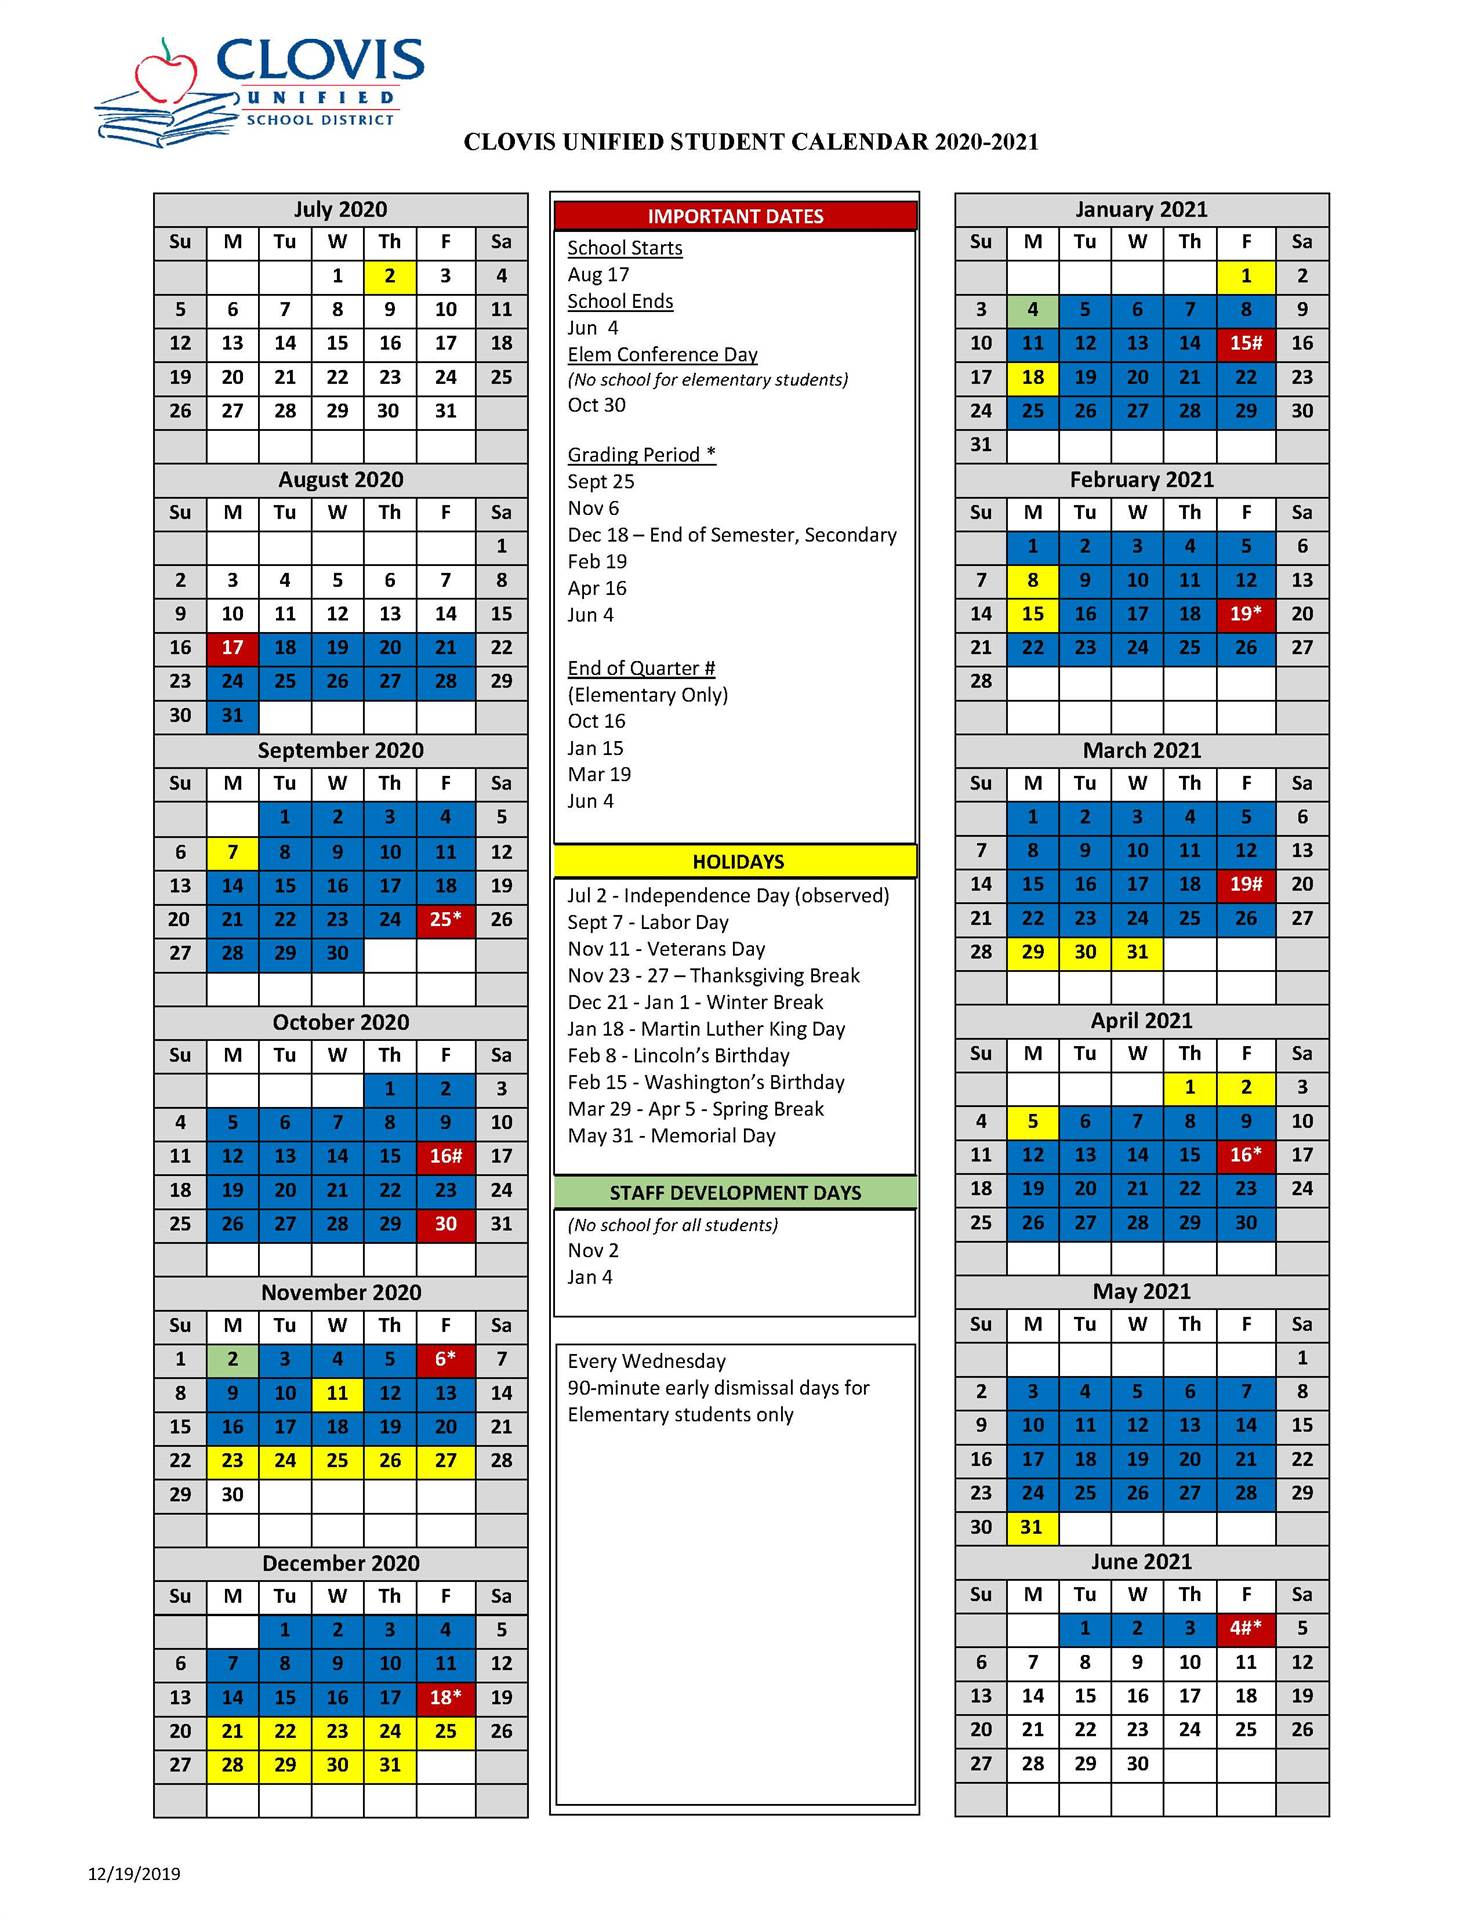 Bisd Calendar 2022 2023.B C S D 2 0 2 0 2 0 2 1 C A L E N D A R Zonealarm Results